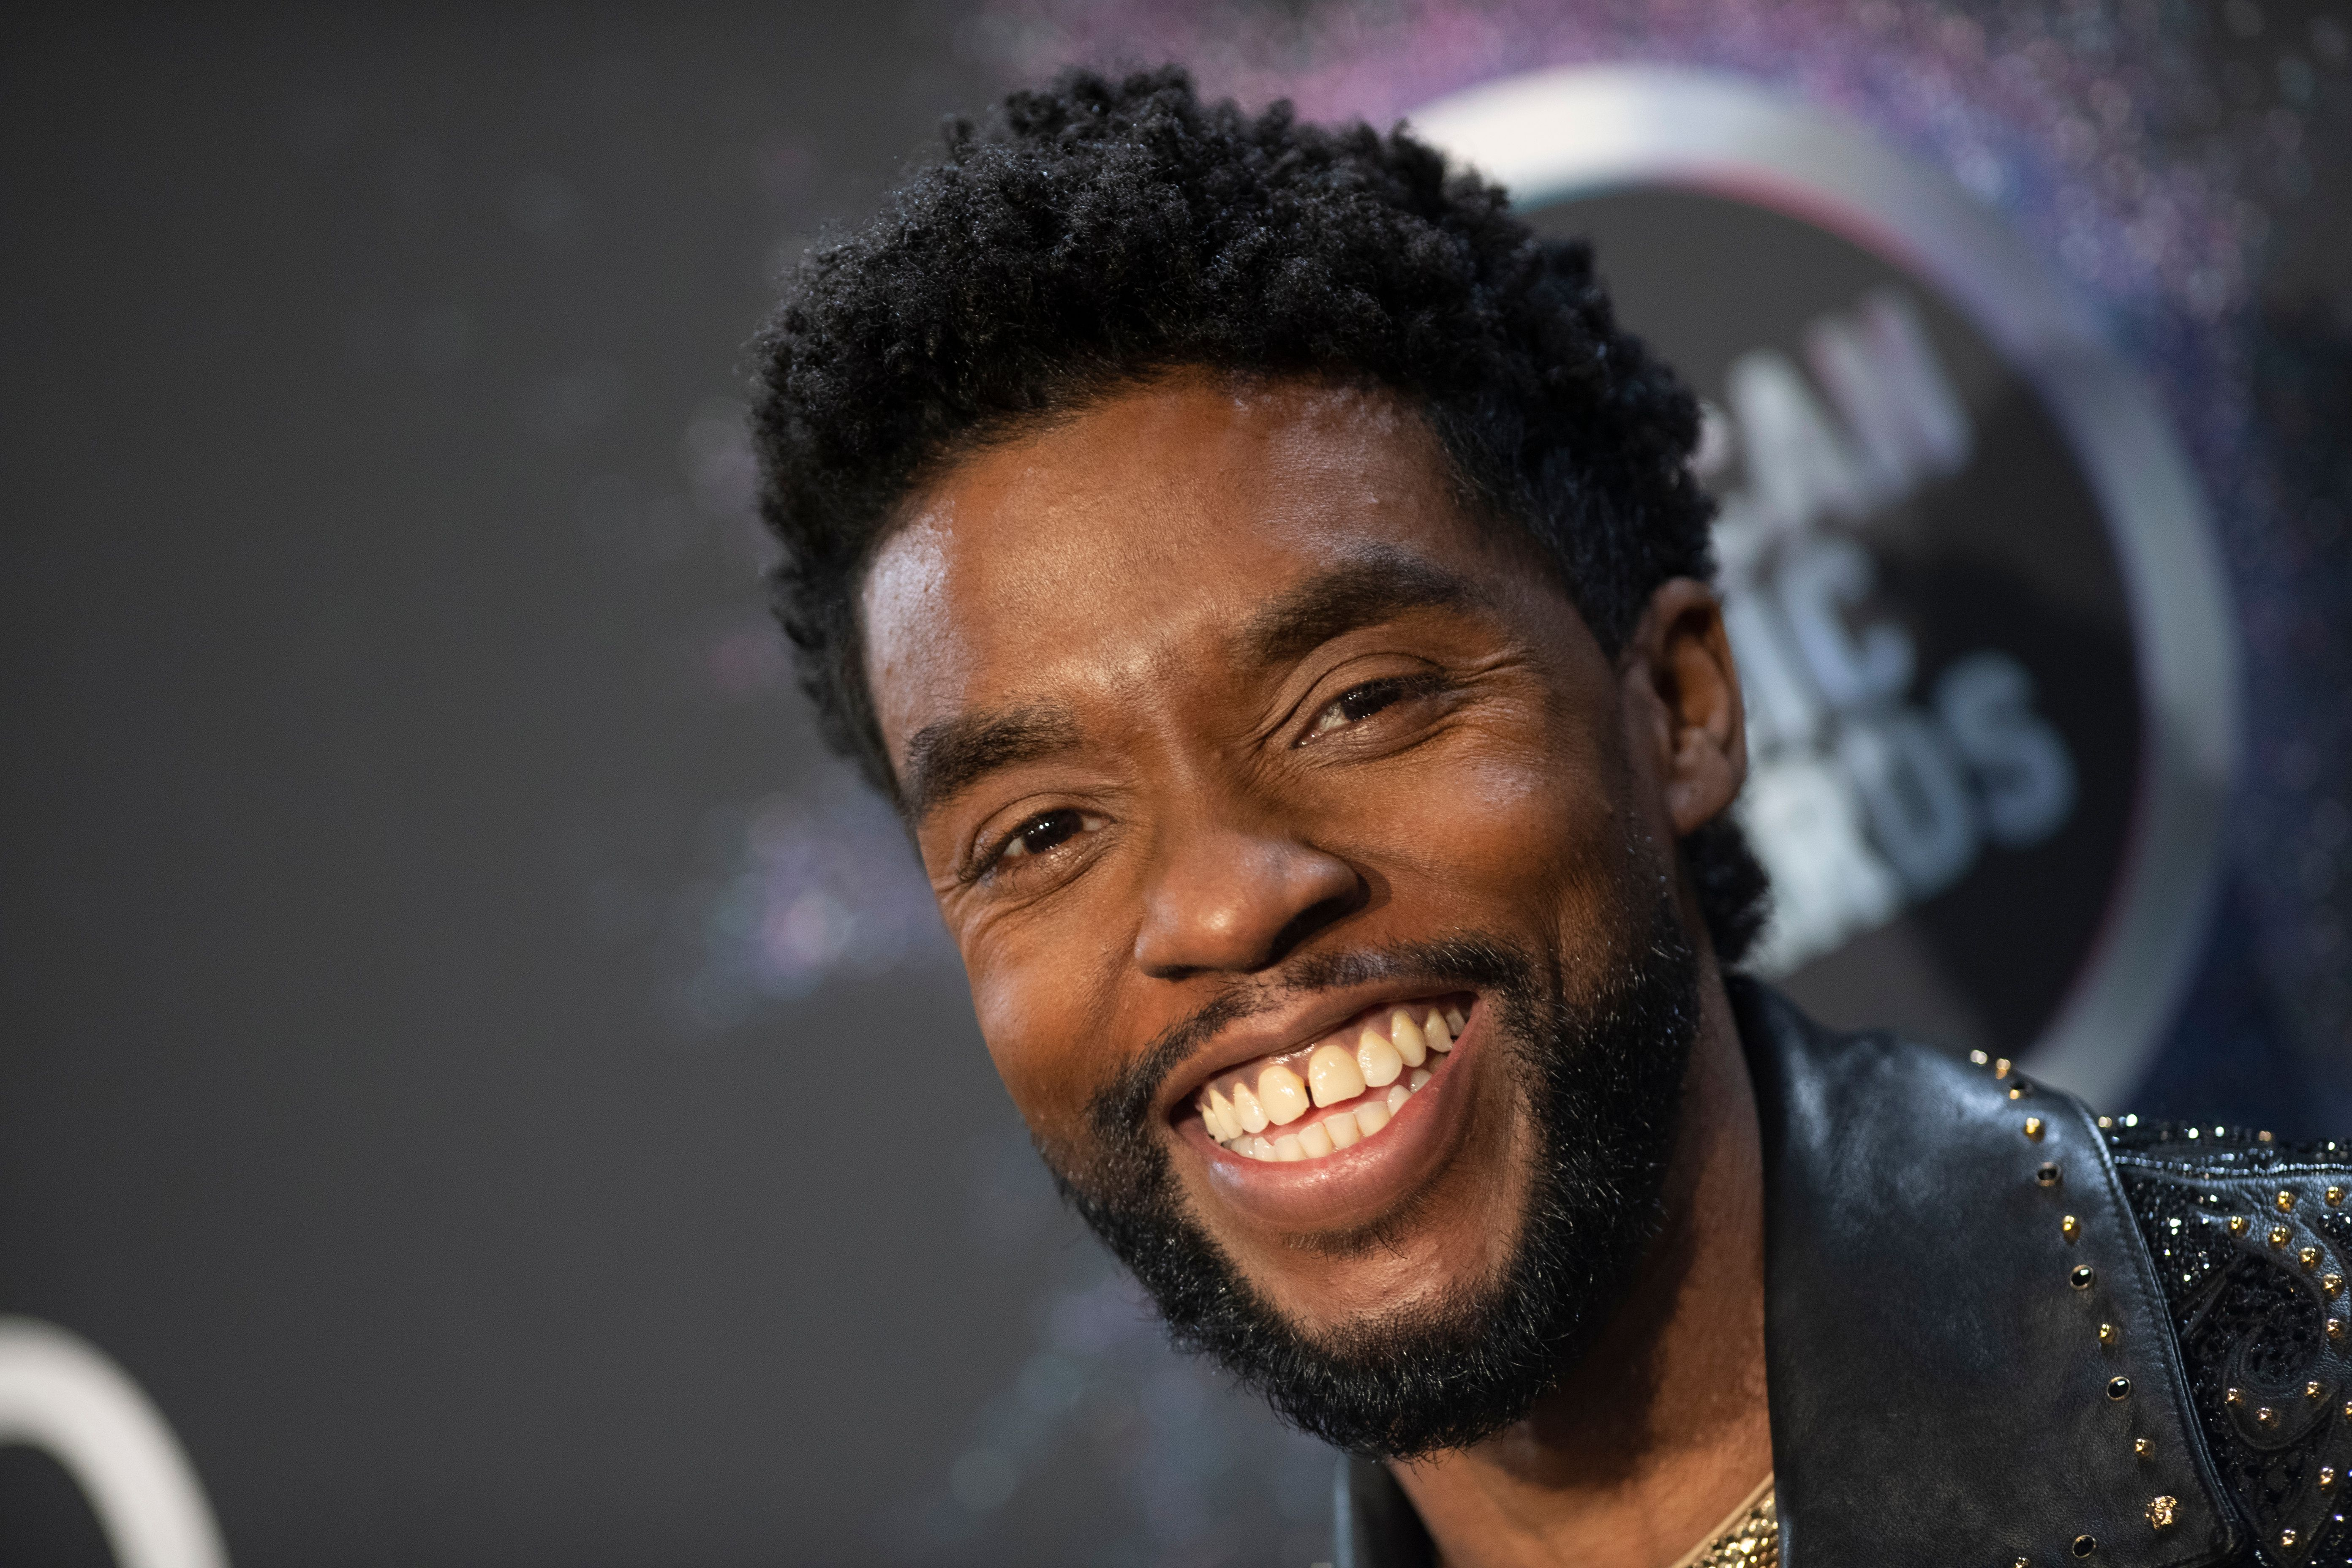 Viola Davis, Mark Ruffalo among co-stars paying tribute to Chadwick Boseman on what would have been his 44th birthday